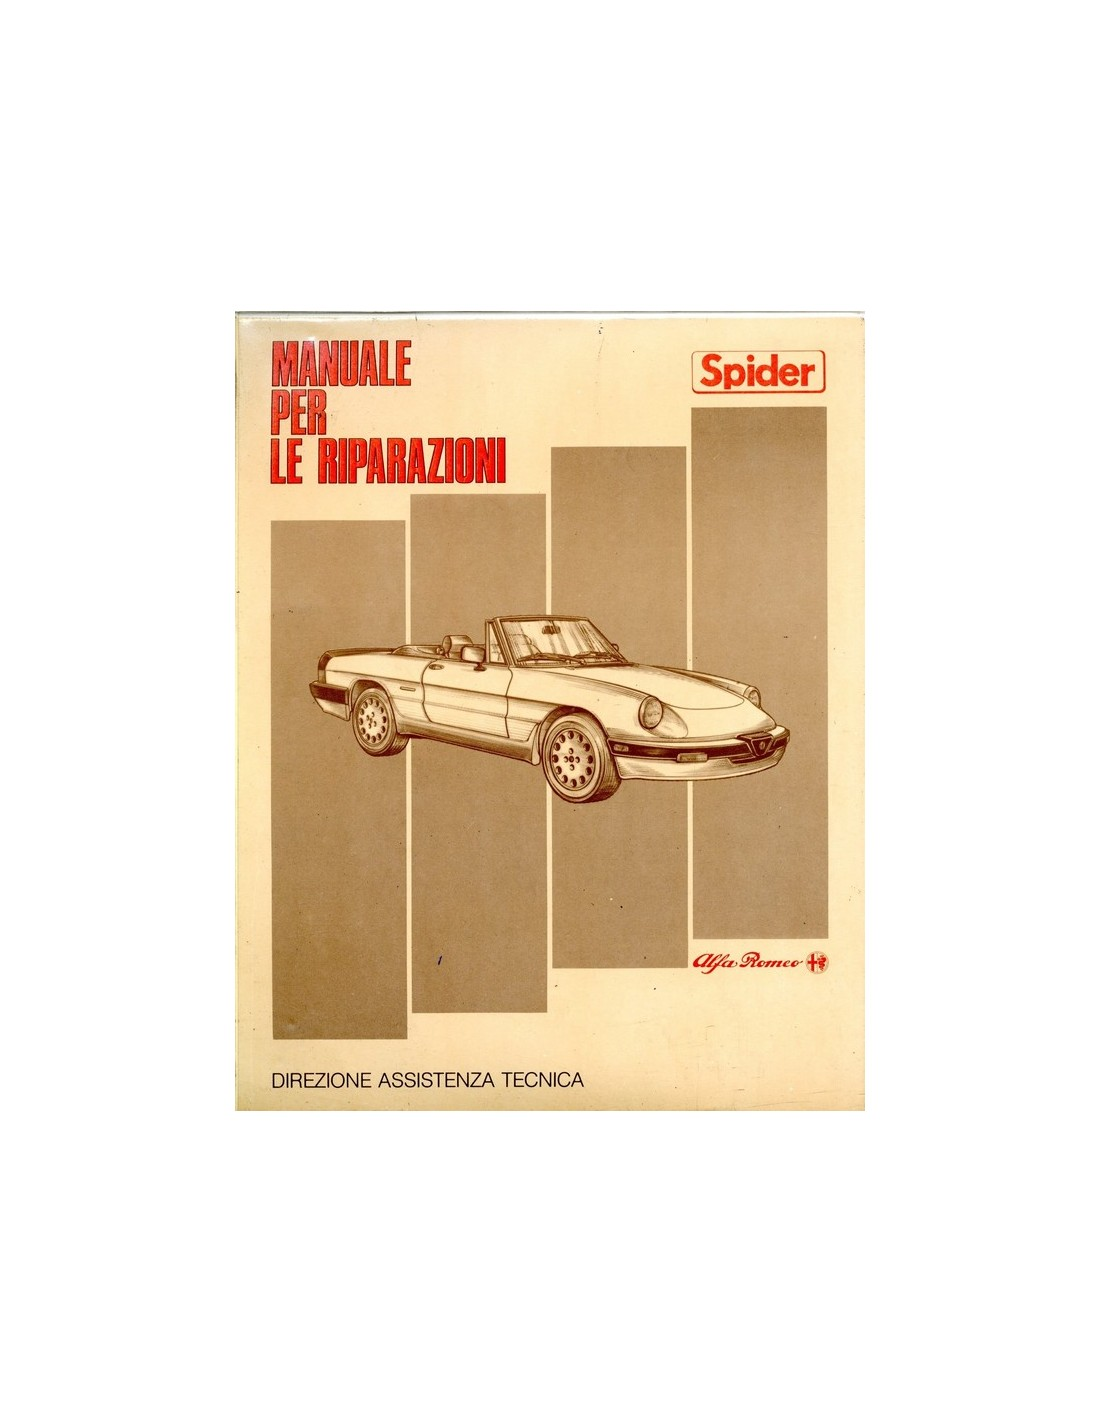 ALFA ROMEO SPIDER QV WORKSHOP MANUAL ITALIAN - Alfa romeo spider workshop manual